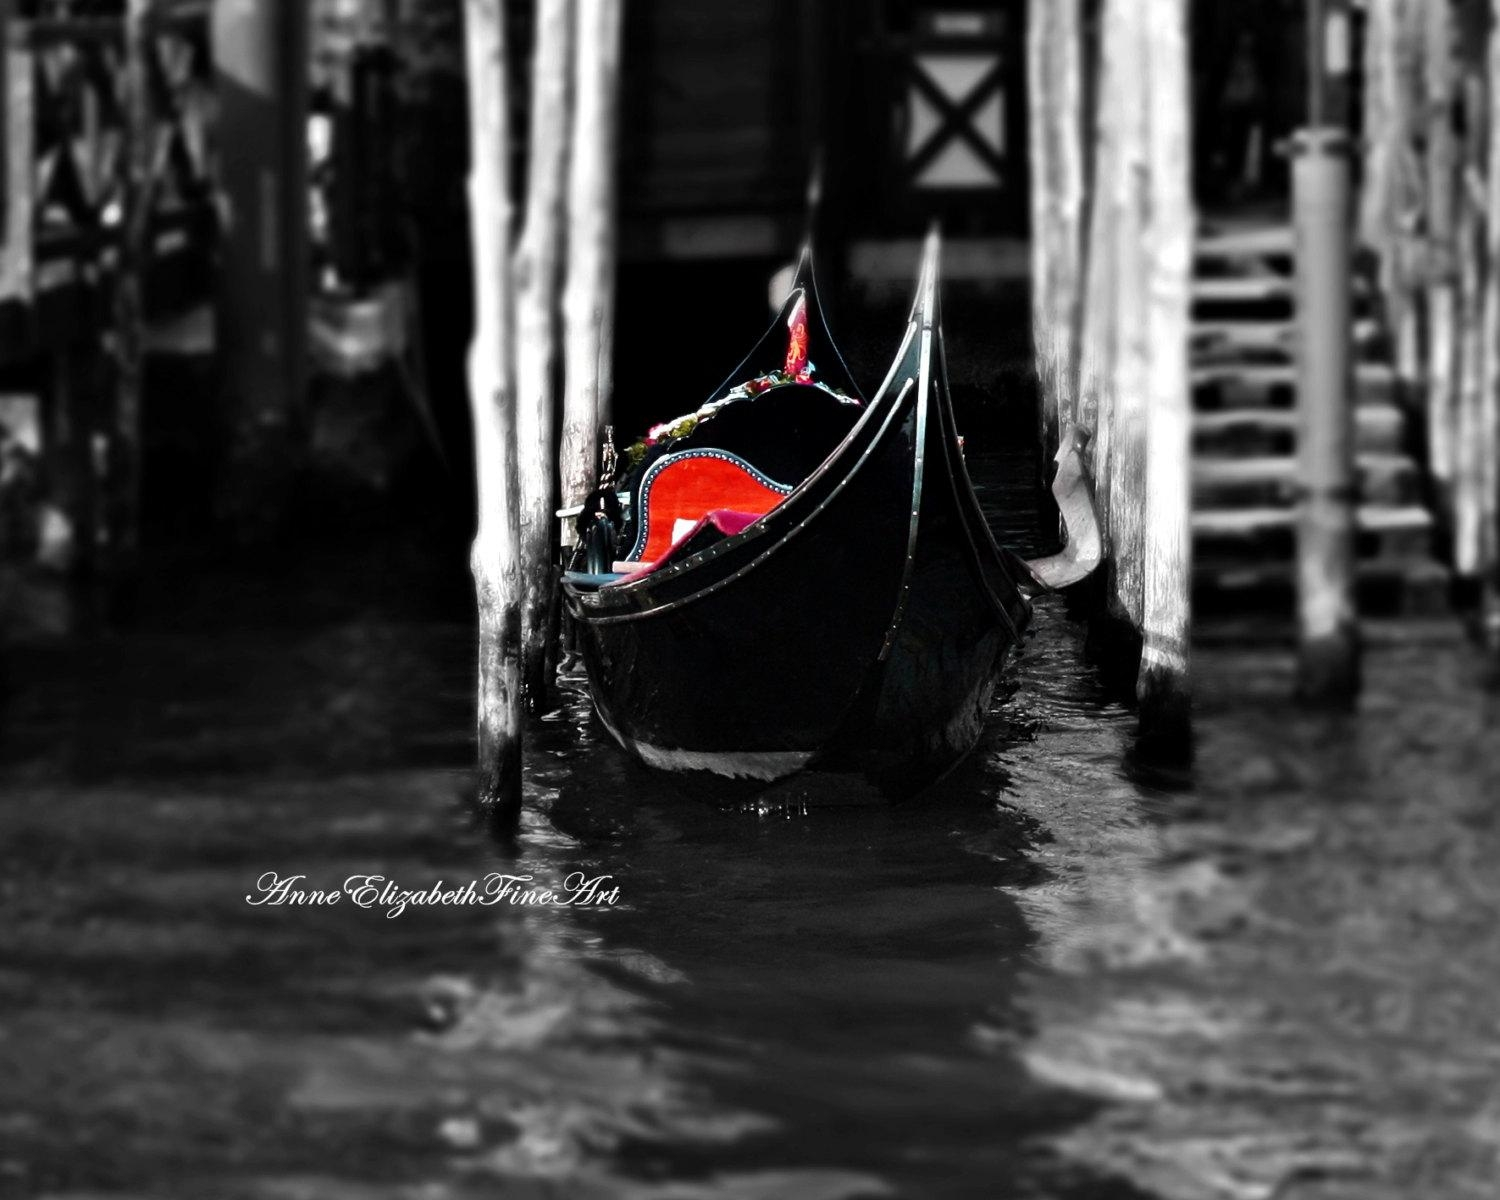 Italy Photographyitalian Theme Home Black White Red Intended For Black And White Italian Wall Art (View 20 of 20)